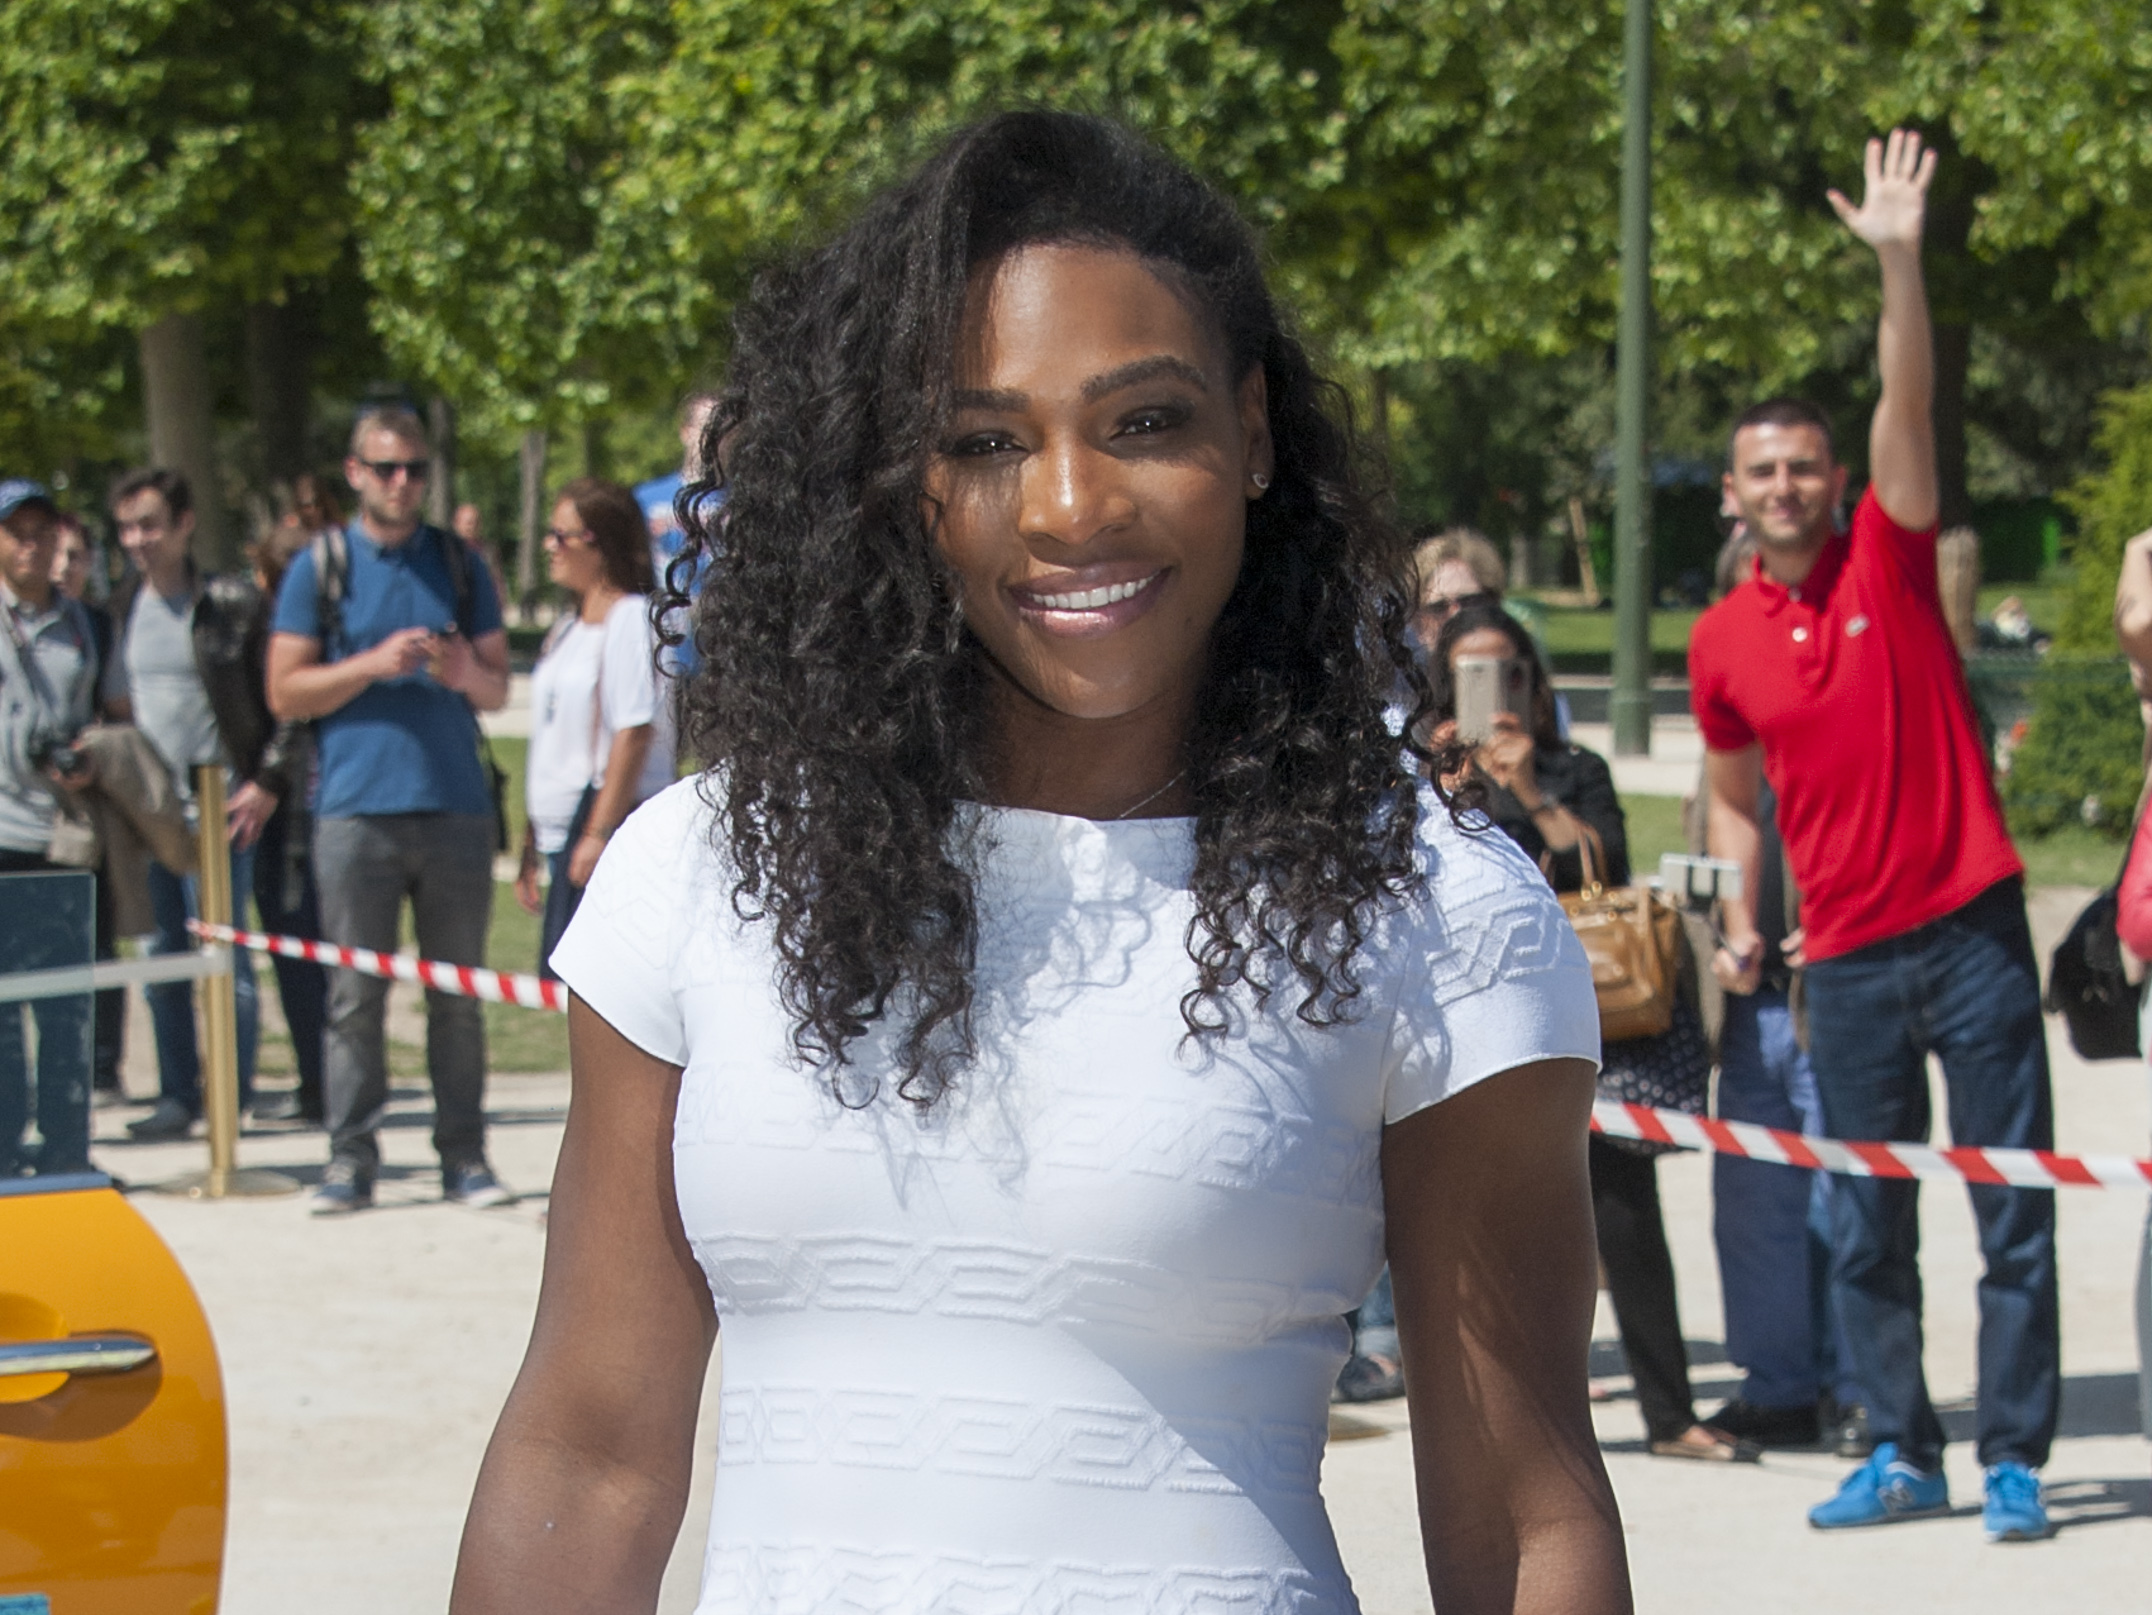 beautiful serena williams smile face hd mobile desktop background free wallpaper